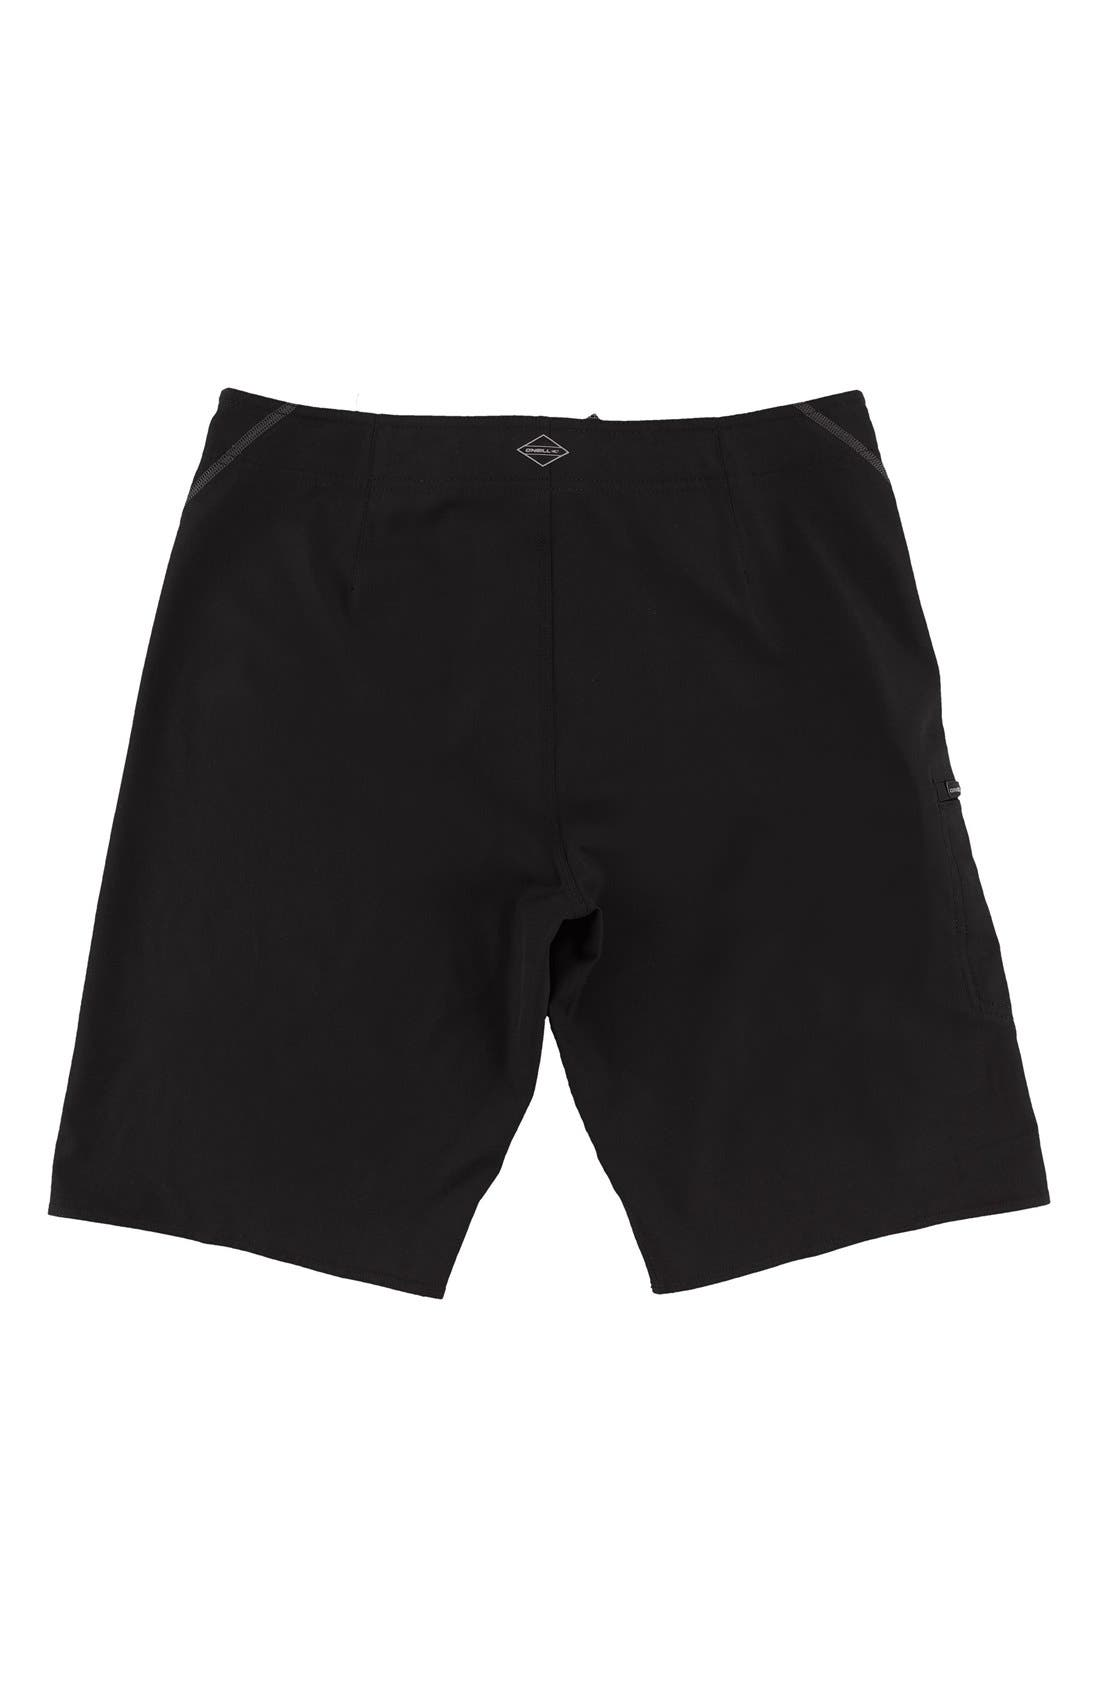 Alternate Image 2  - O'Neill Hyperfreak S-Seam Stretch Board Shorts (Big Boys)